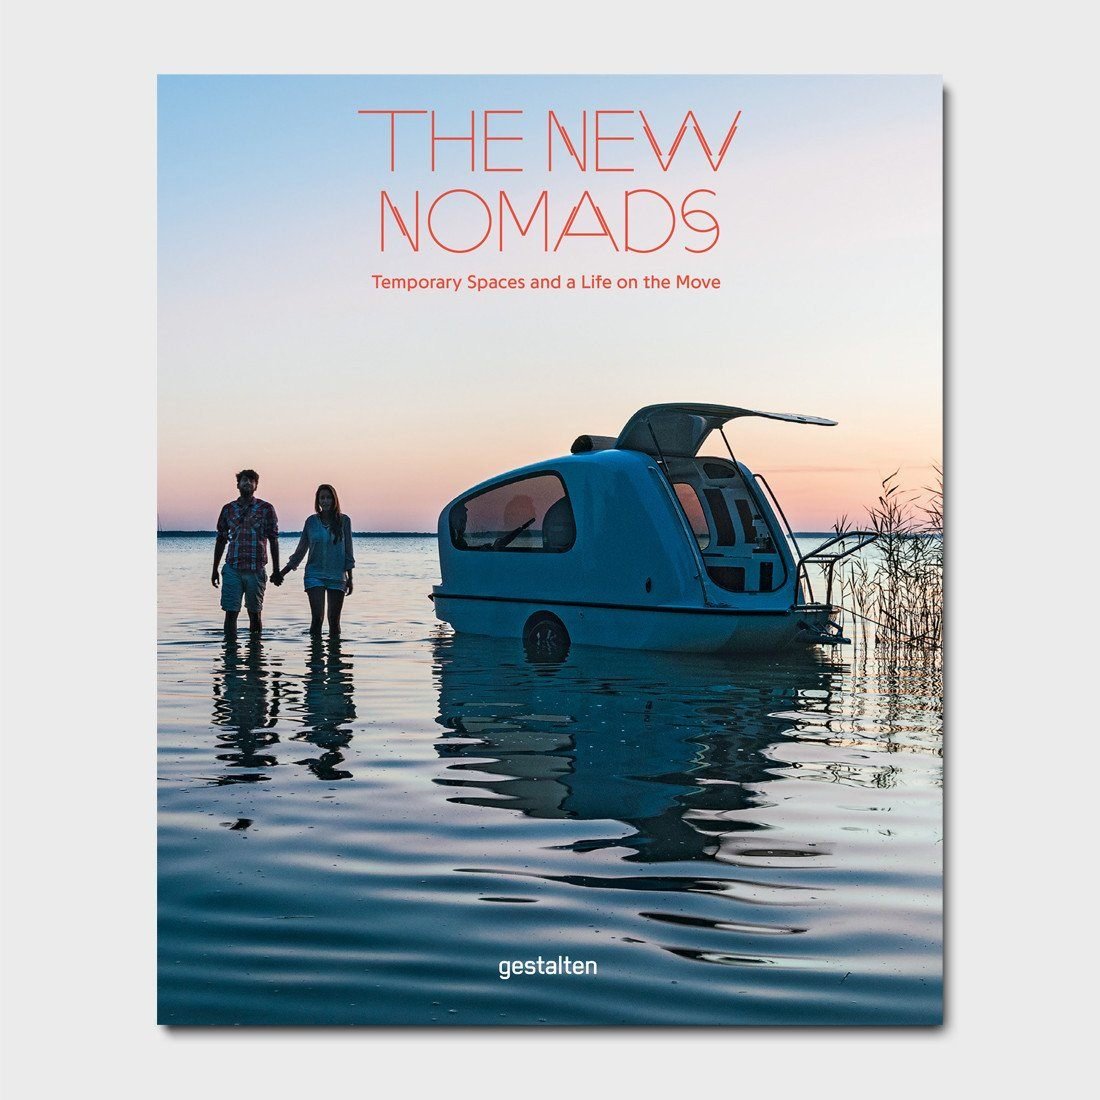 The New Nomads